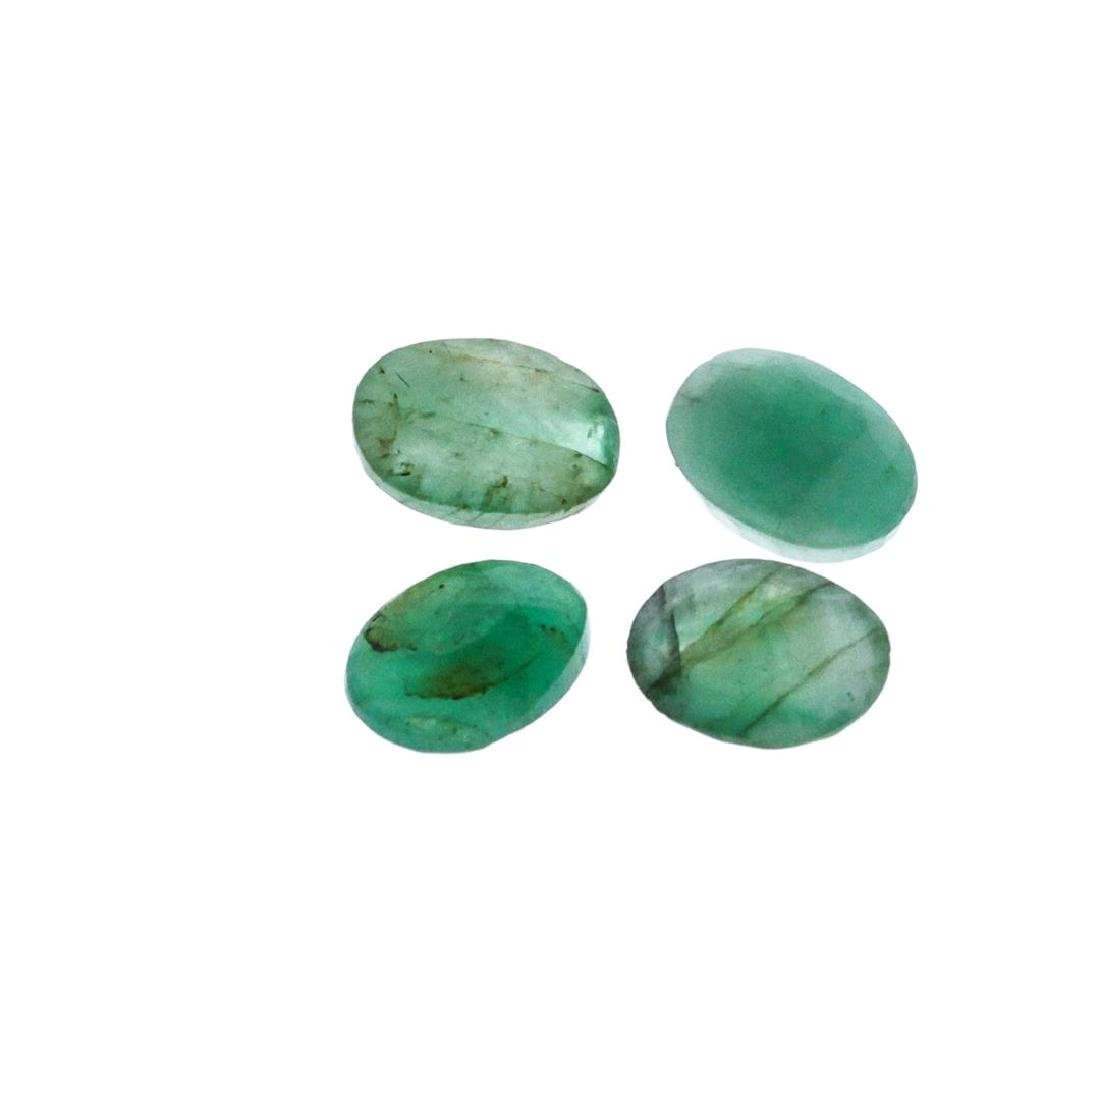 4.39 cts. Oval Cut Natural Emerald Parcel